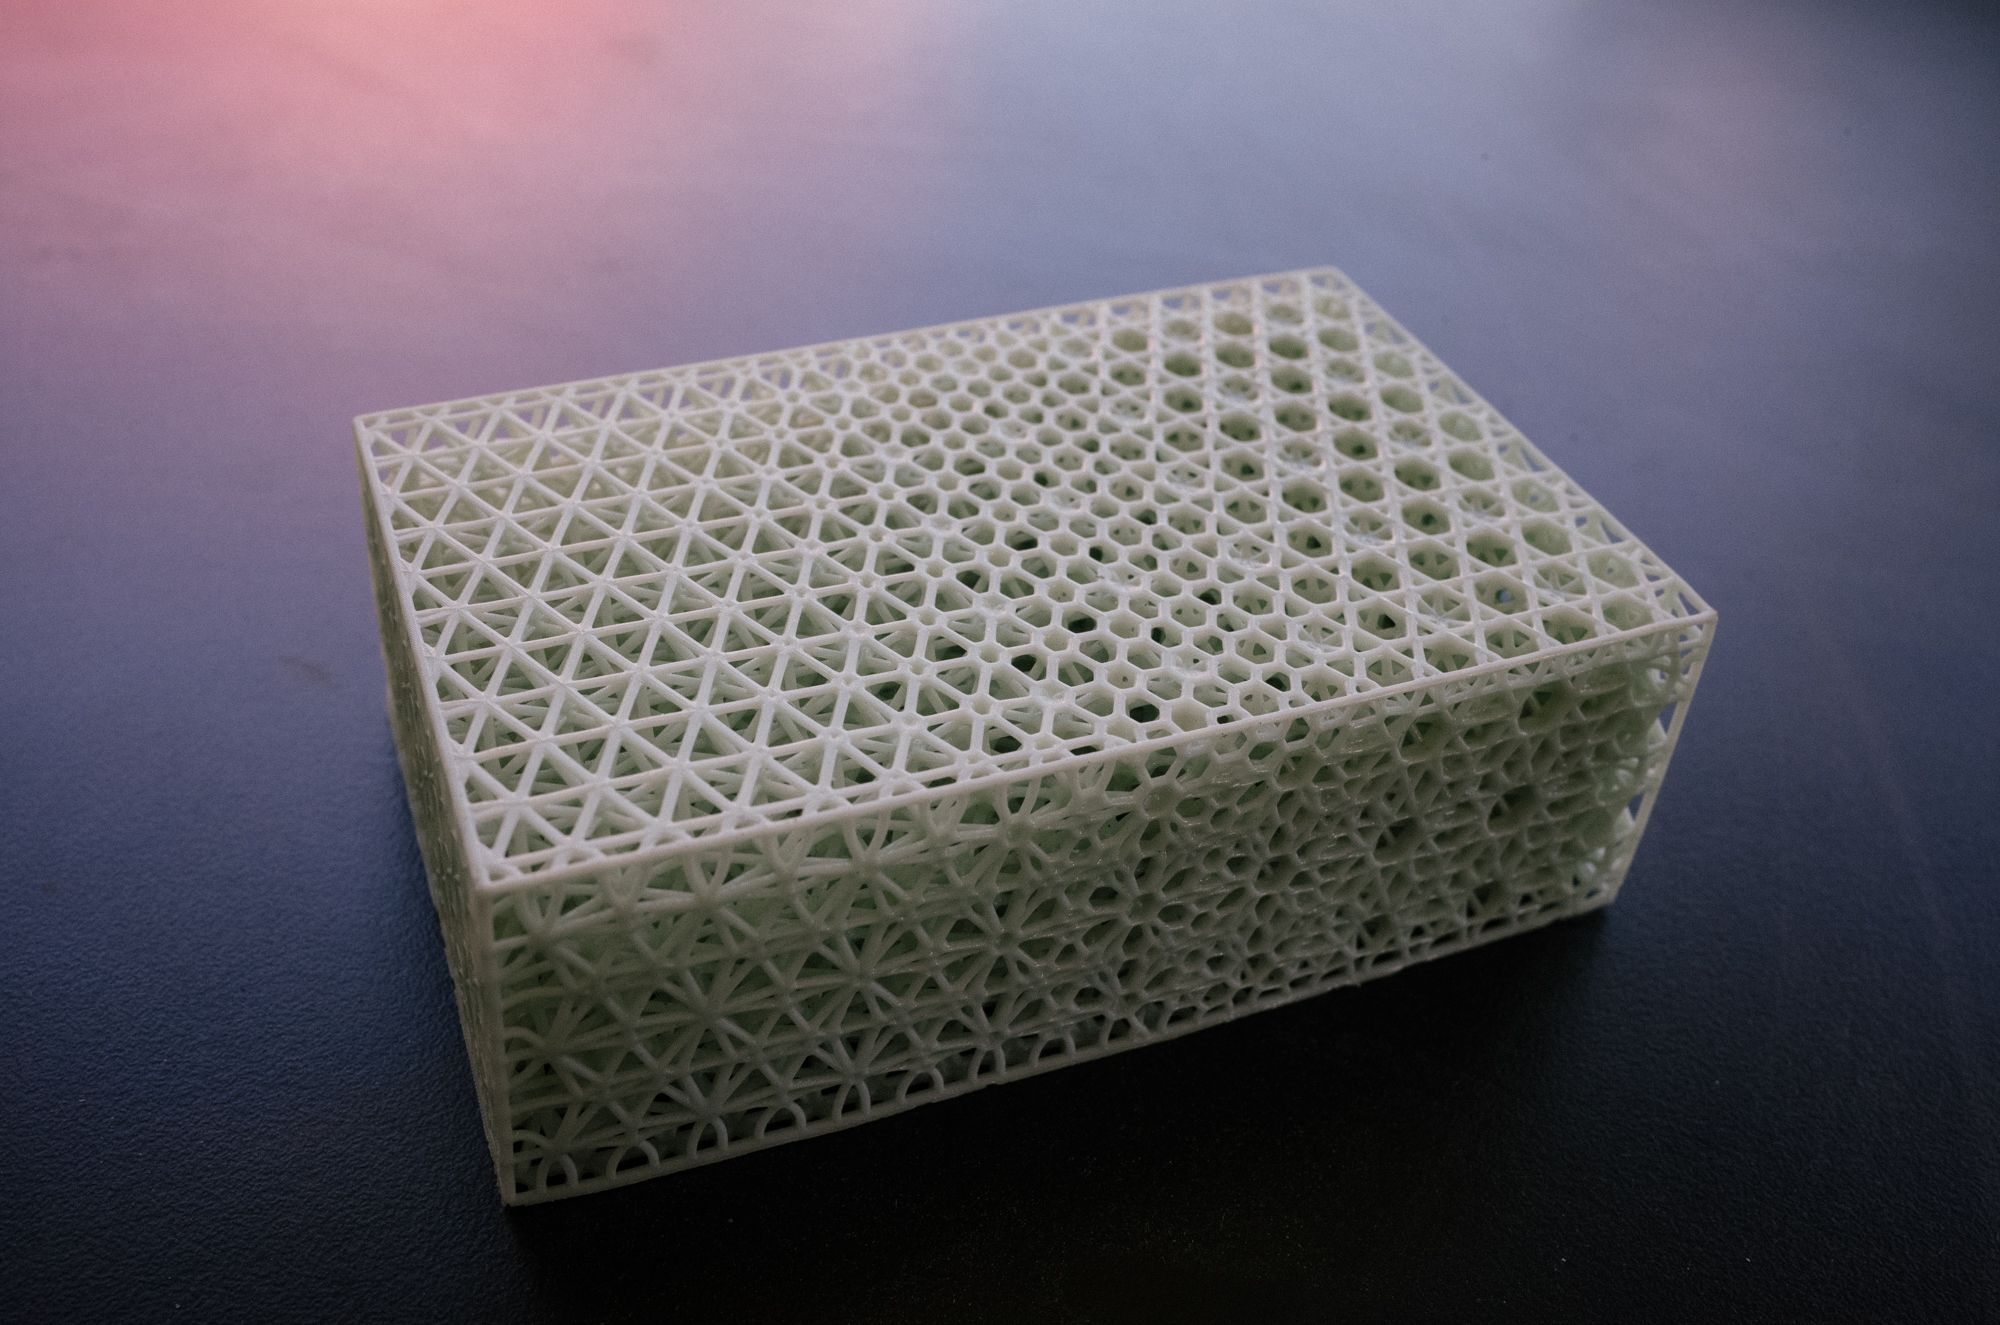 The process allows to precisely vary levels of density (or how squishy it is) within a single printed piece.